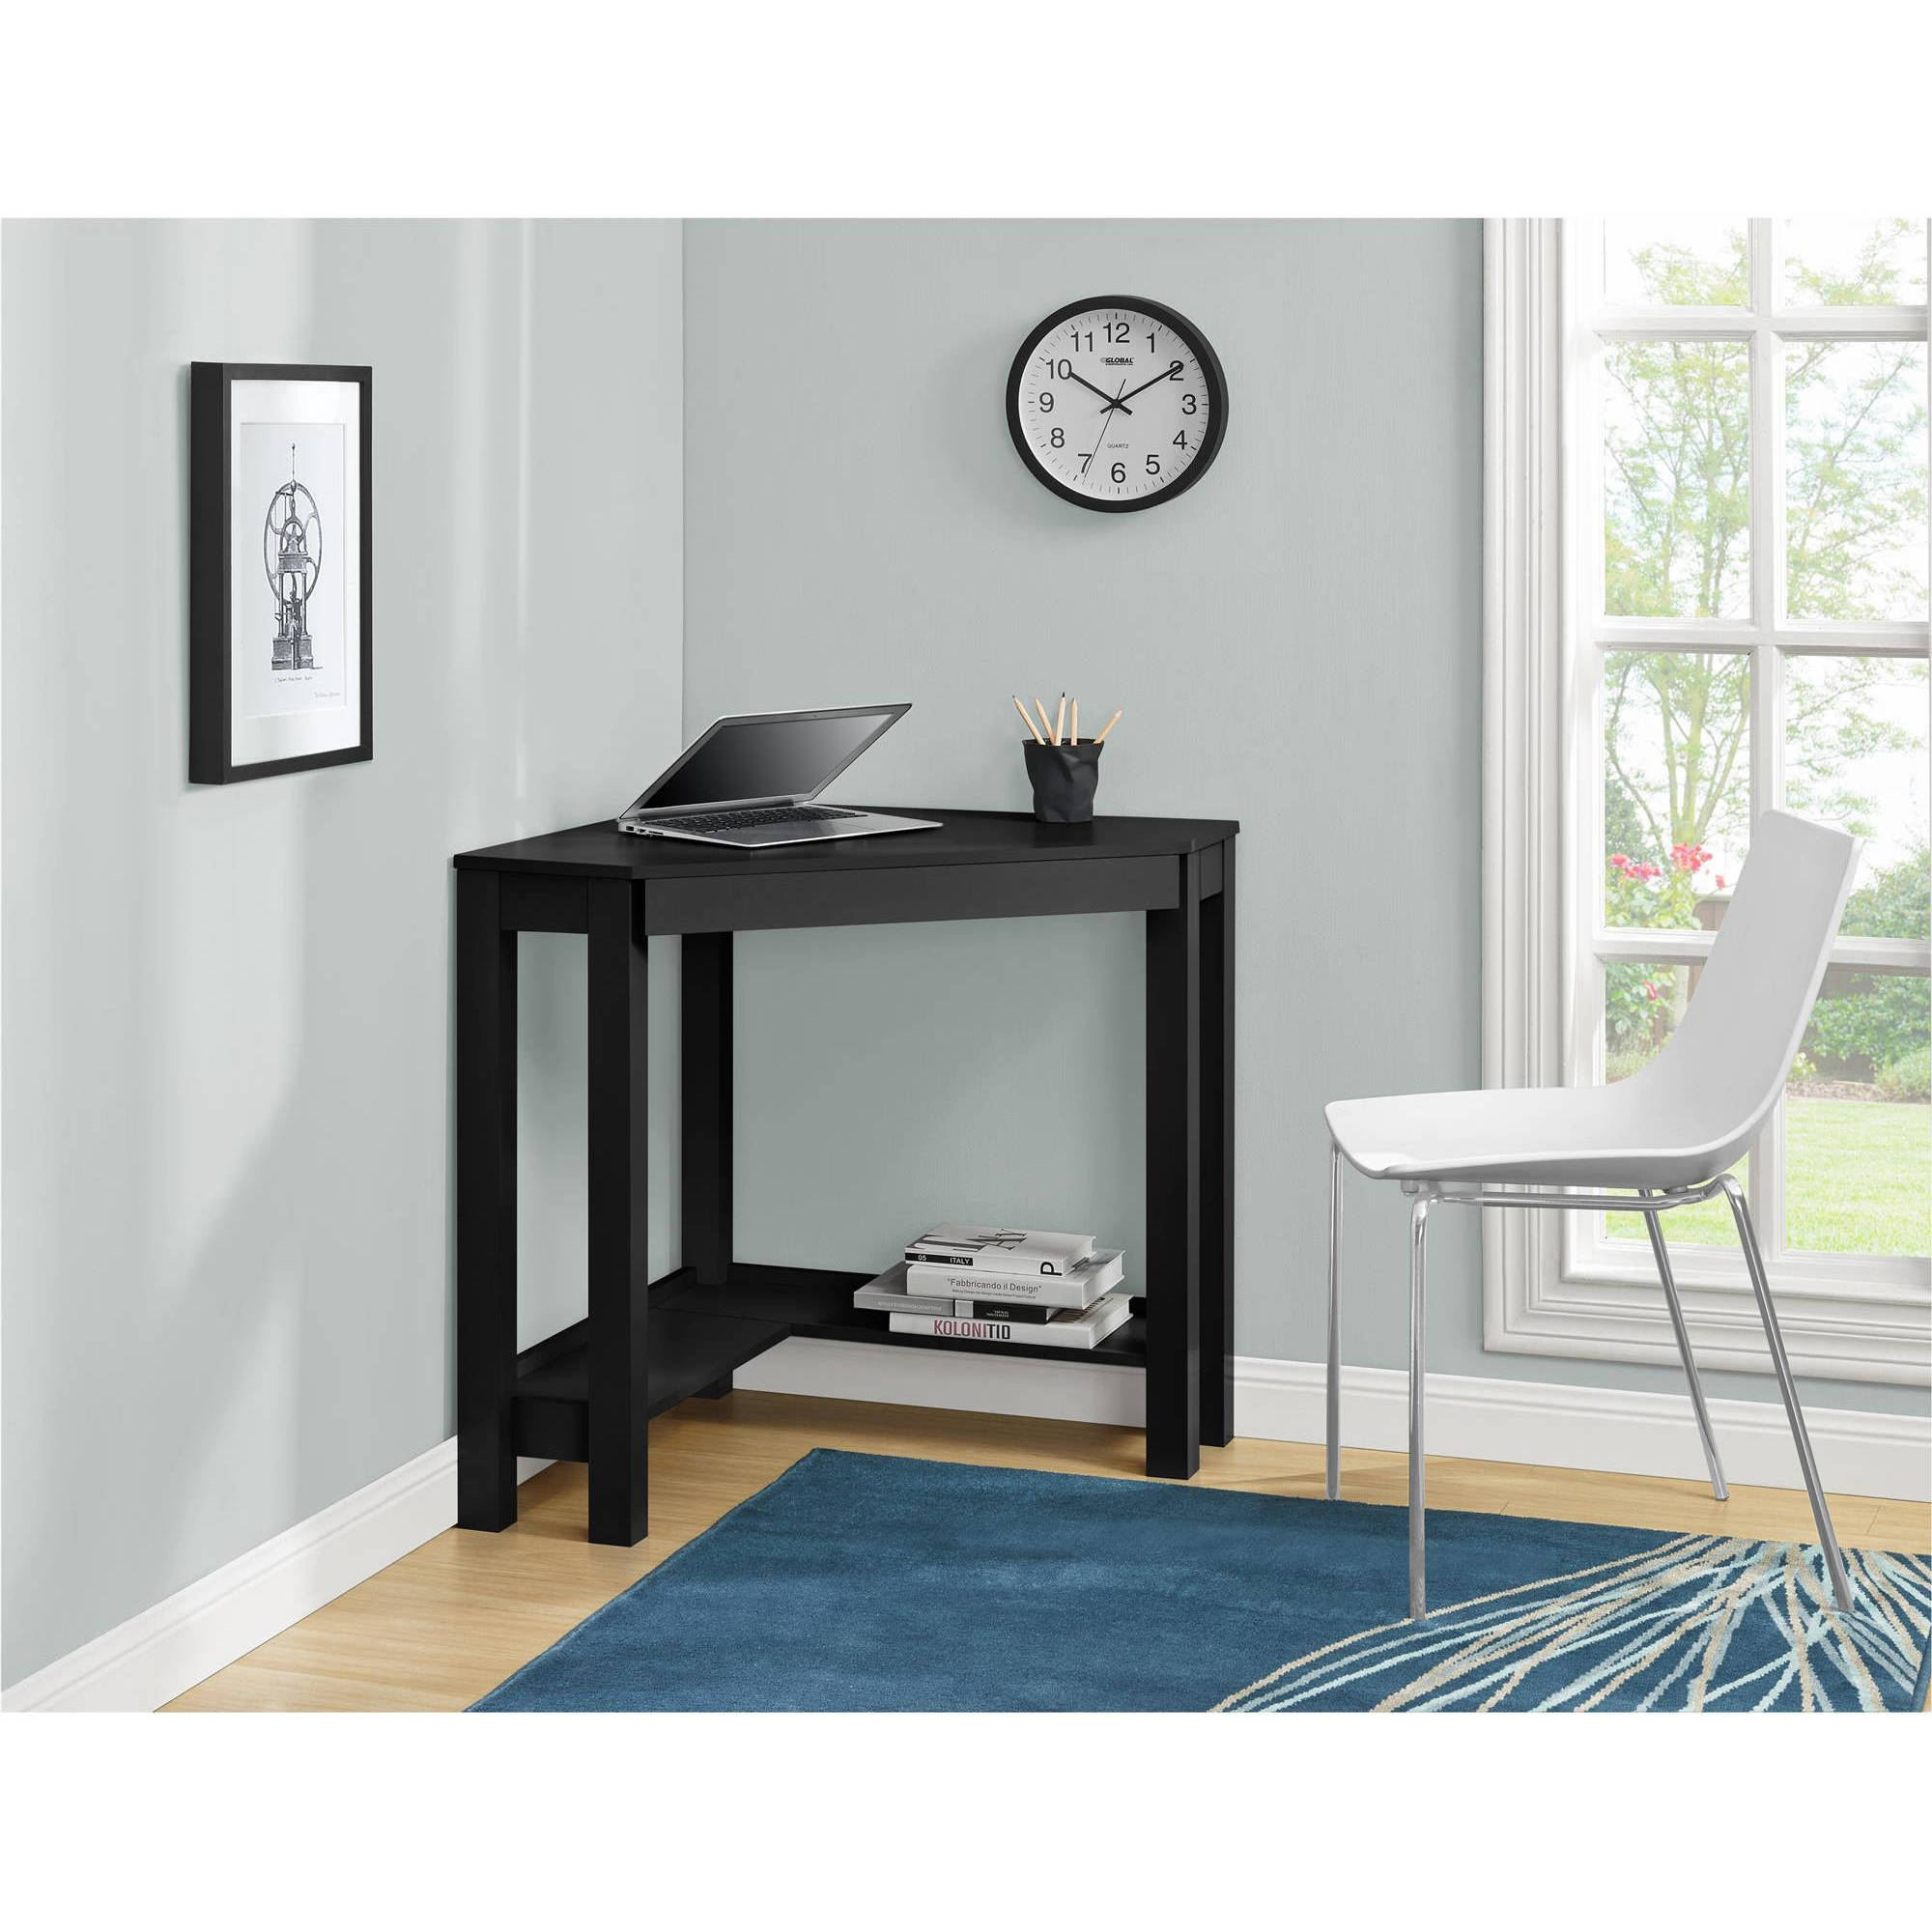 Altra Parsons Corner Desk, Multiple Colors